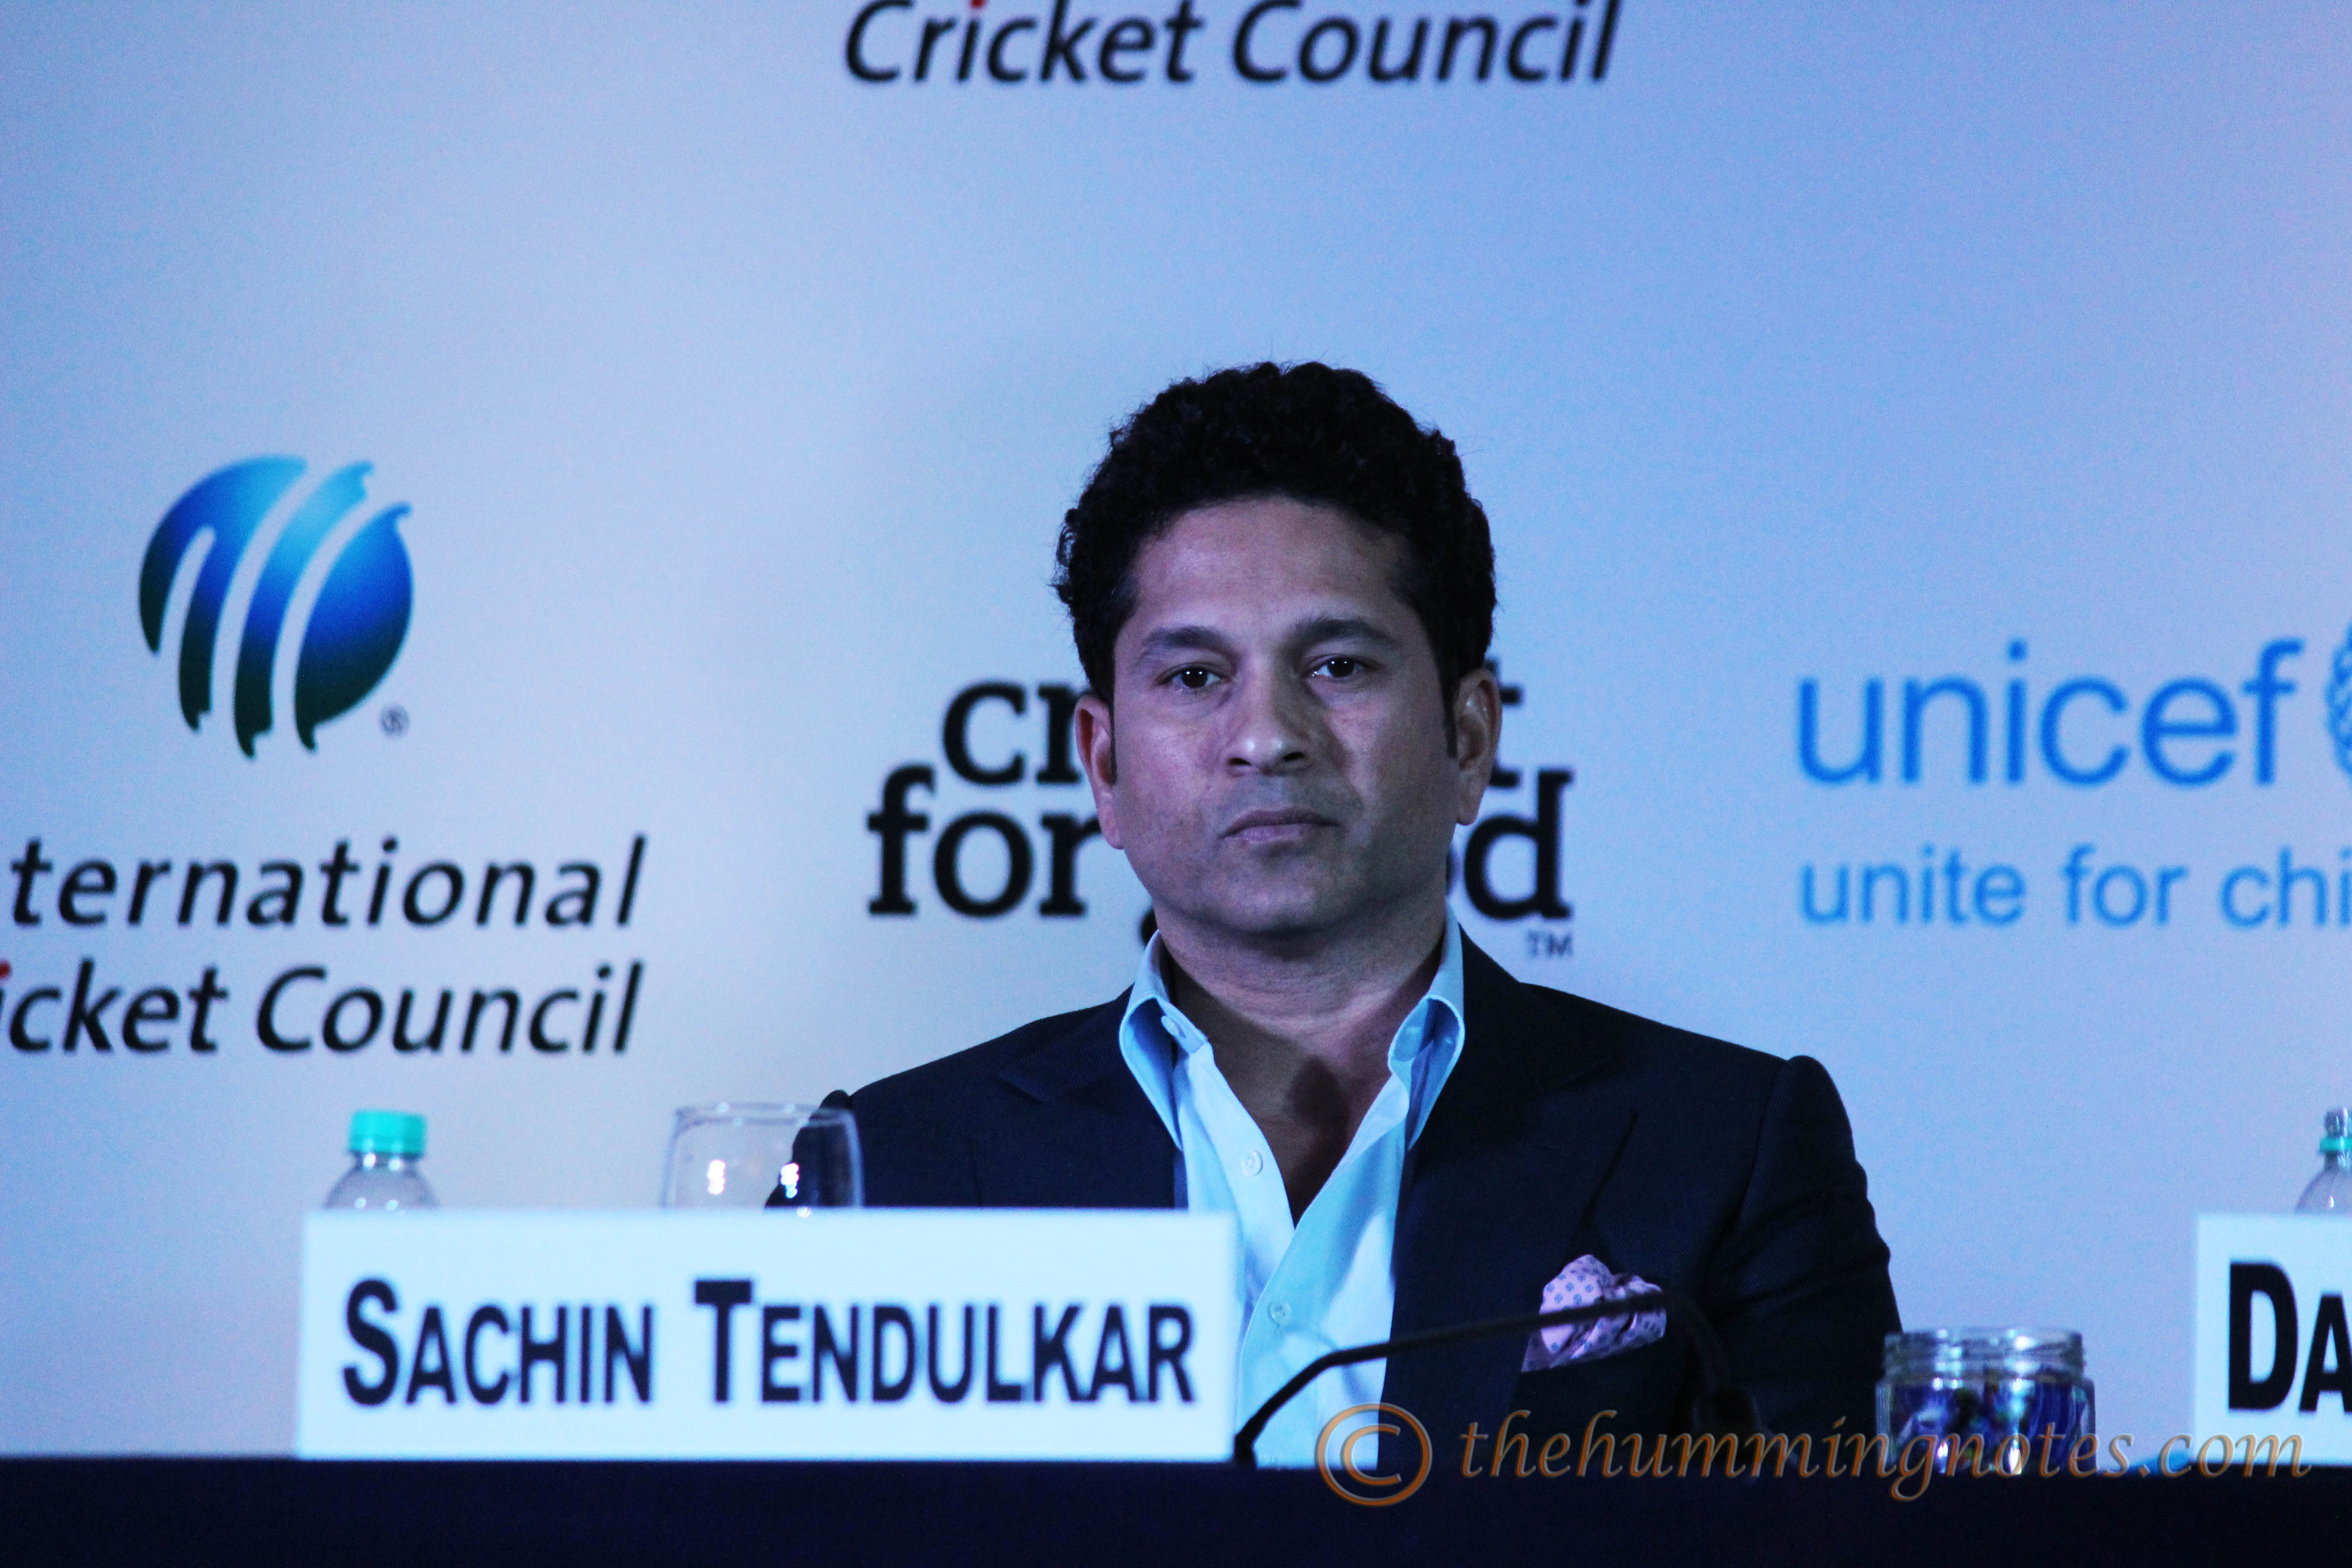 Master blaster Sachin Tendulkar has been associated with many social concerns